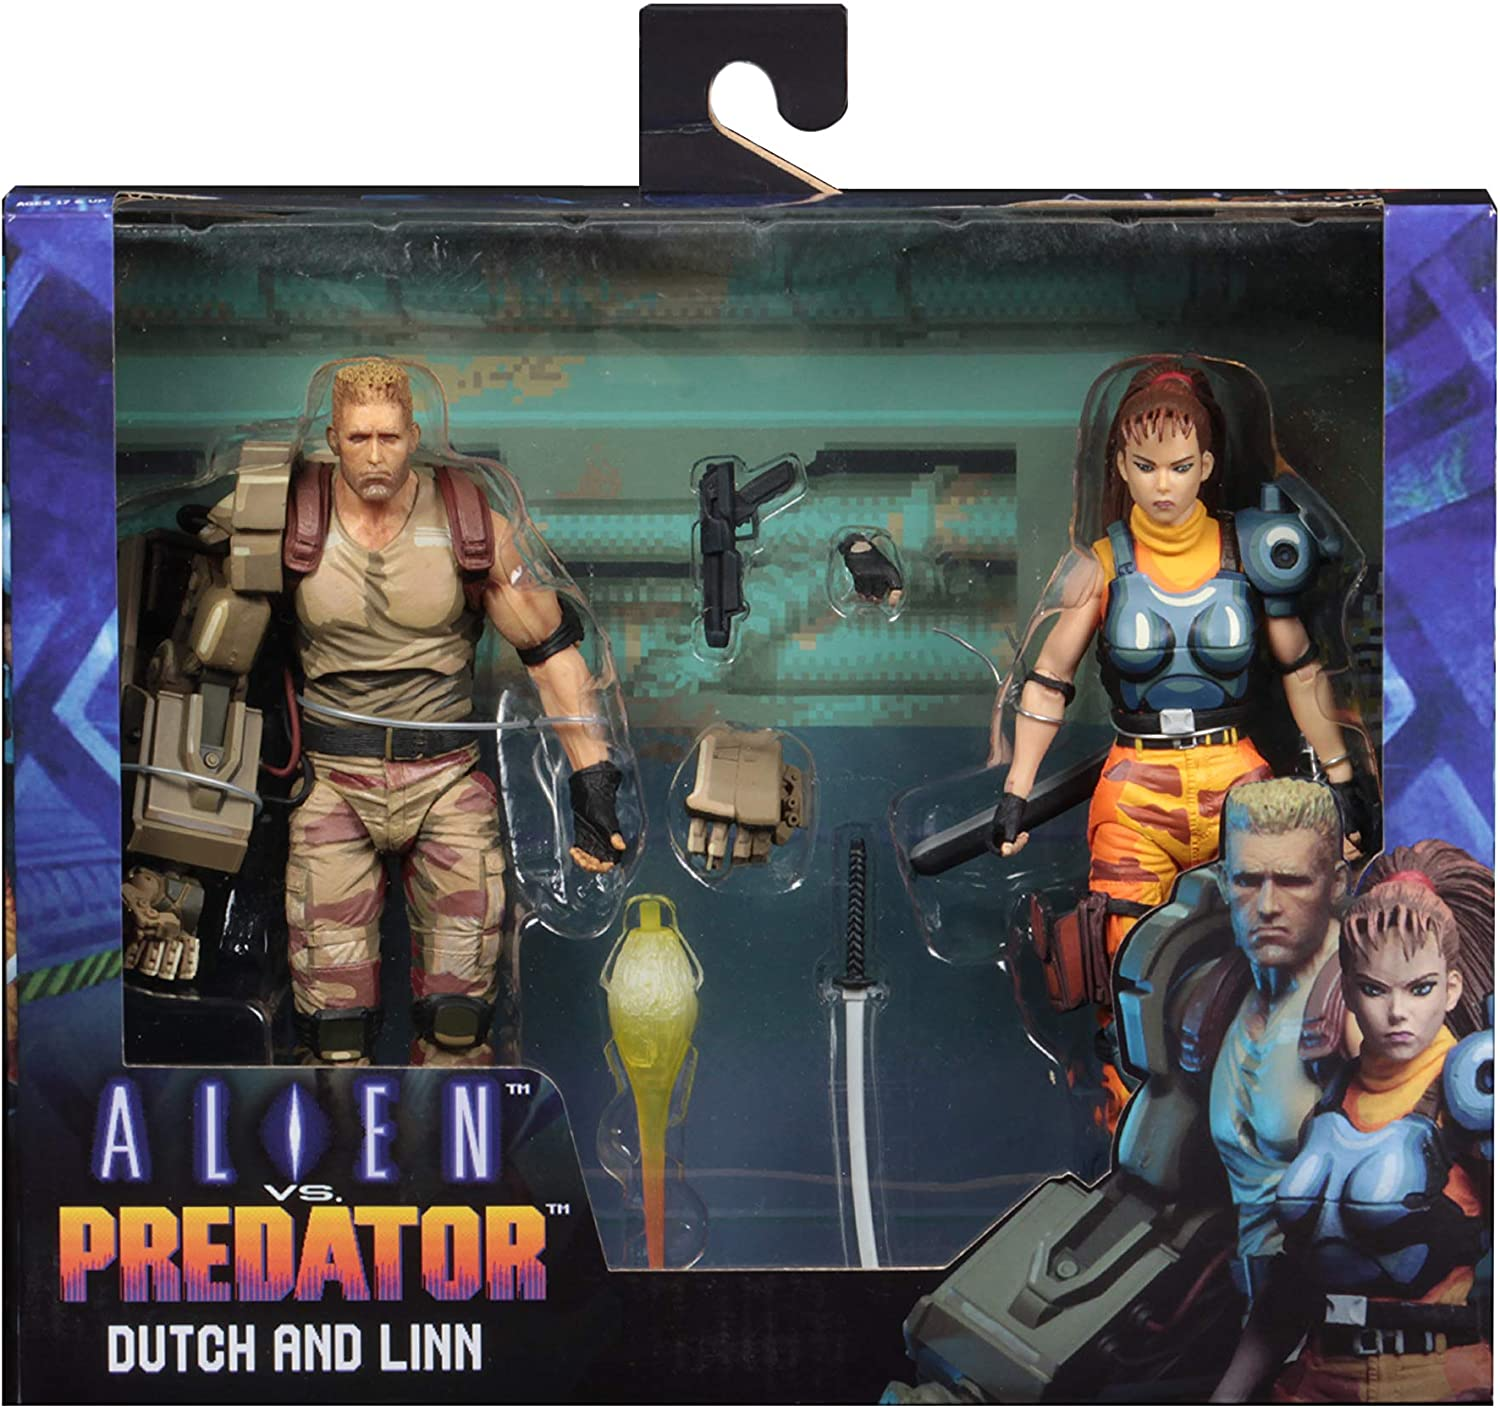 NECA Figura Dutch & Linn 18 cm. Alien vs. Predator 1994: Amazon.es: Juguetes y juegos